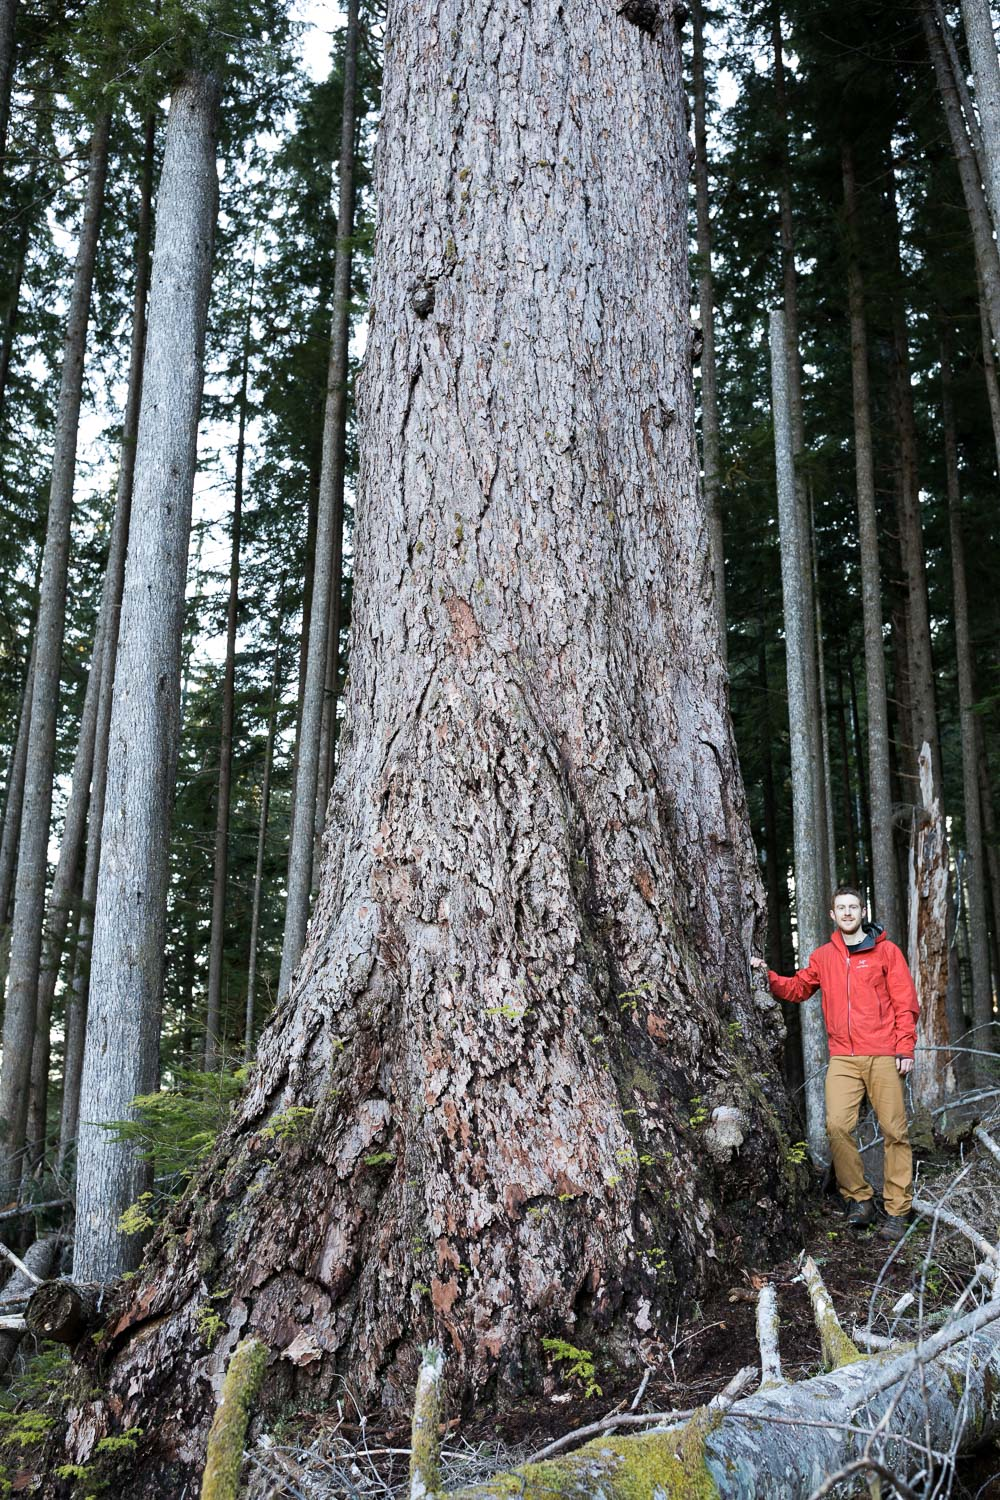 Another 10ft diameter Douglas-fir tree. Though outside the cutblock, it remains vulnerable to future logging.